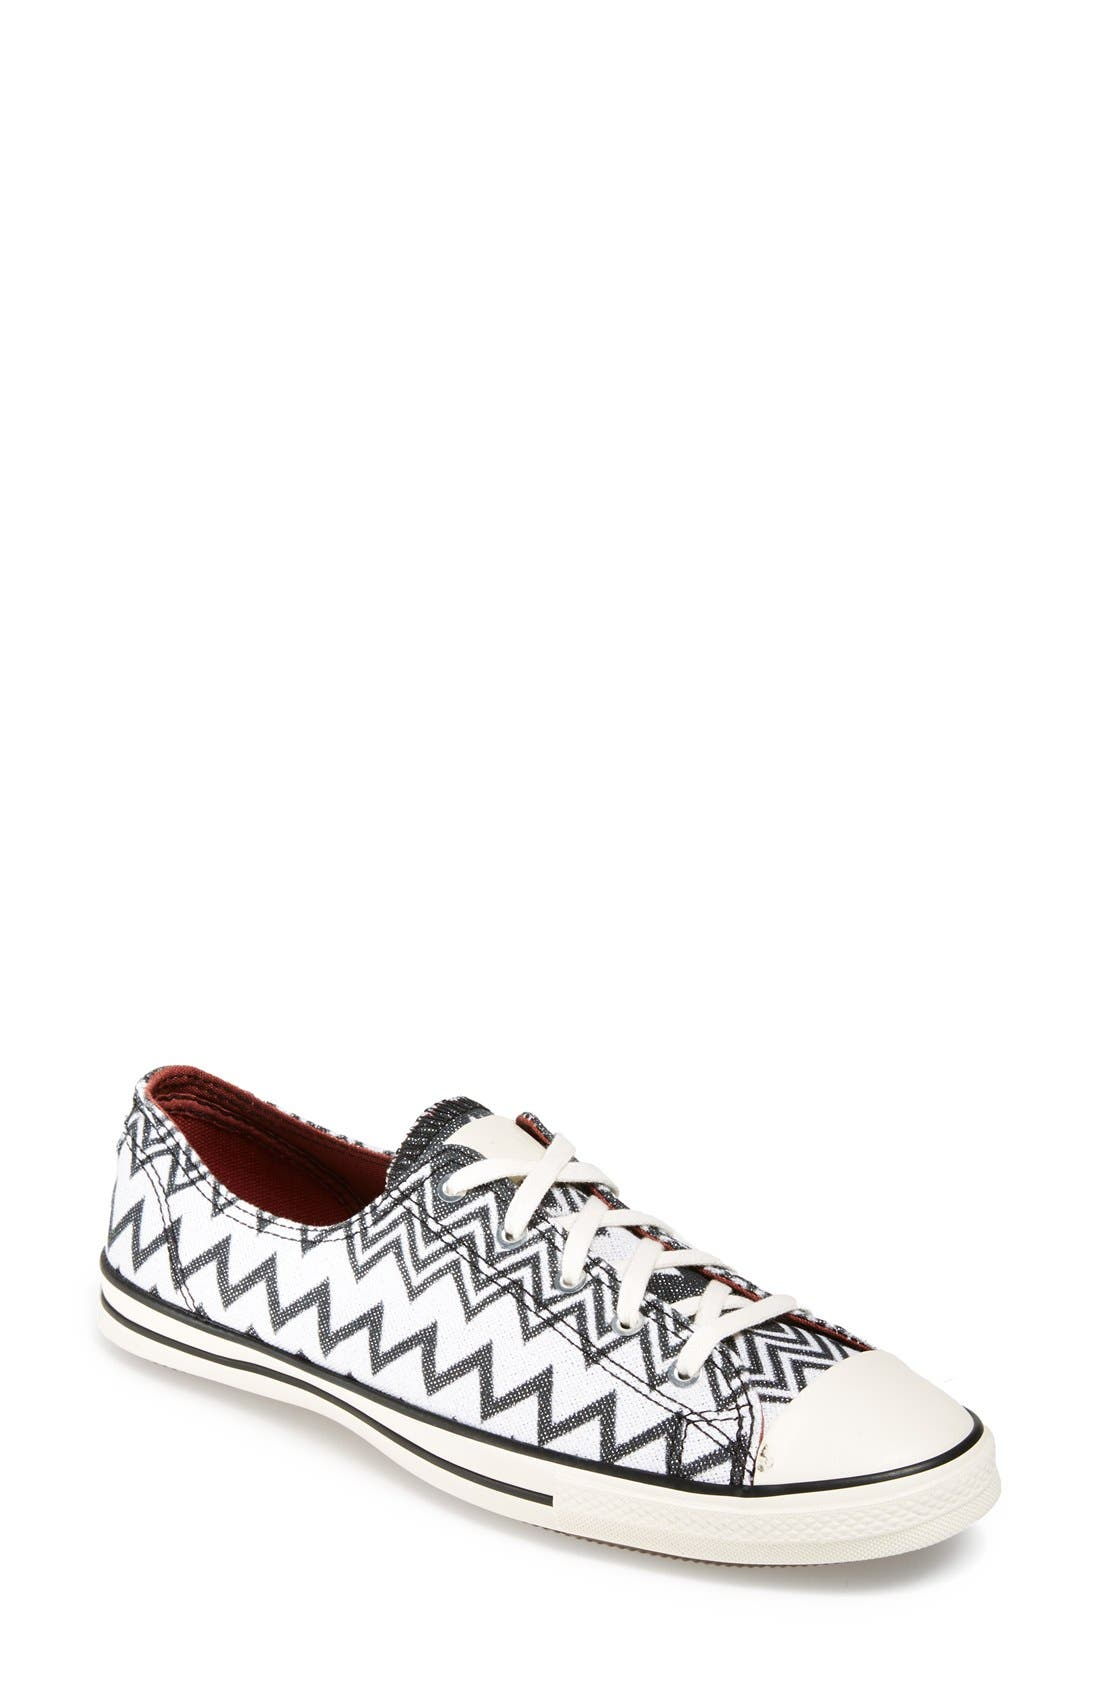 x Missoni Chuck Taylor<sup>®</sup> All Star<sup>®</sup> 'Fancy' Ox Sneaker,                             Main thumbnail 1, color,